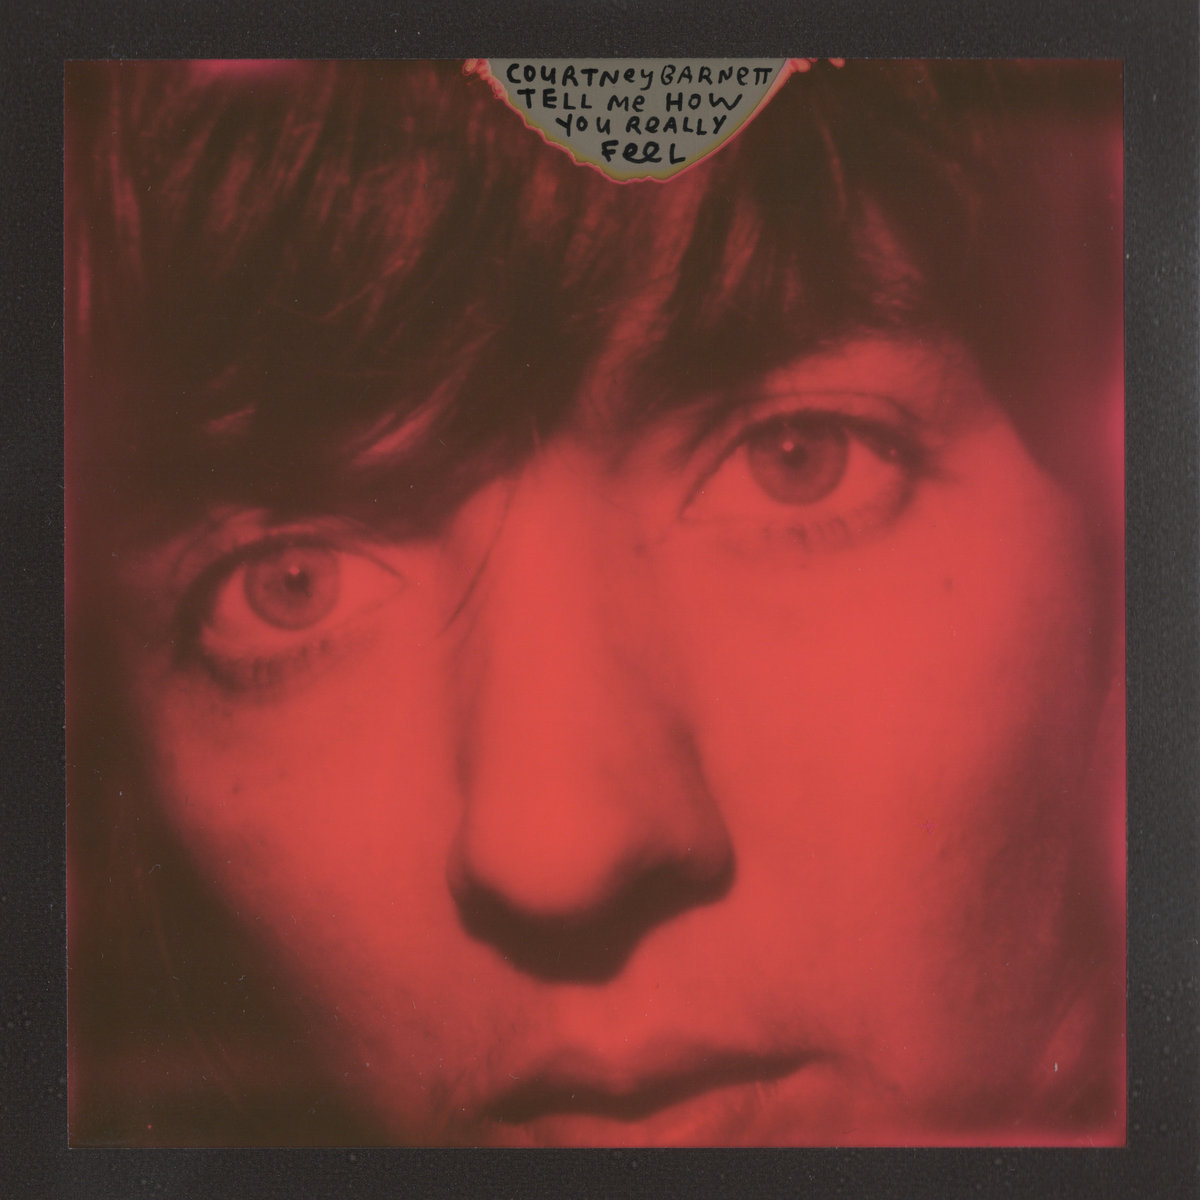 Aural Impressions: Courtney Barnett, Tell Me How You Really Feel